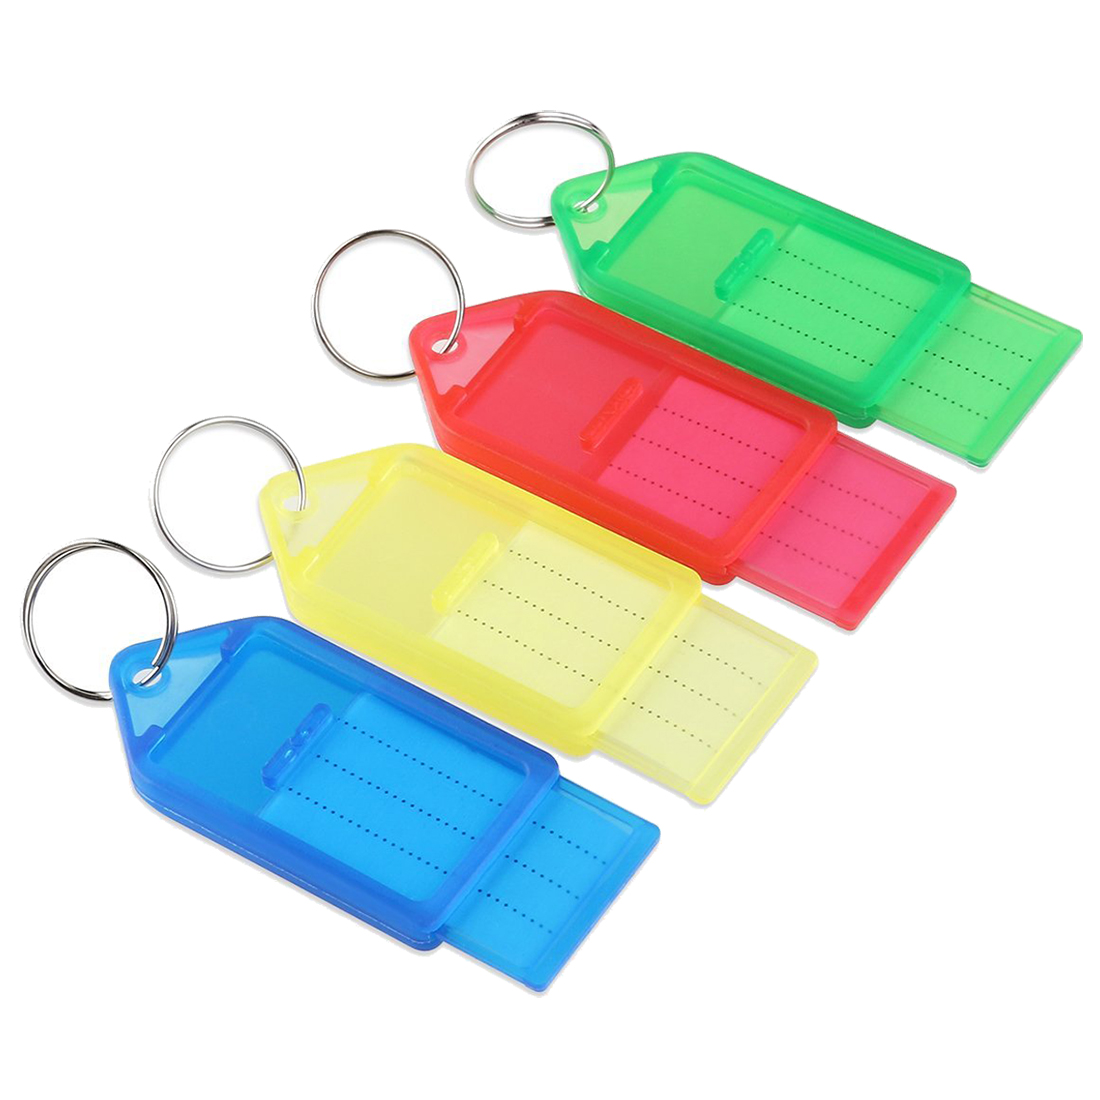 5pcs( ABDB 60pcs plastic Slideable Key Fobs Luggage Tags with Key Rings Random Color